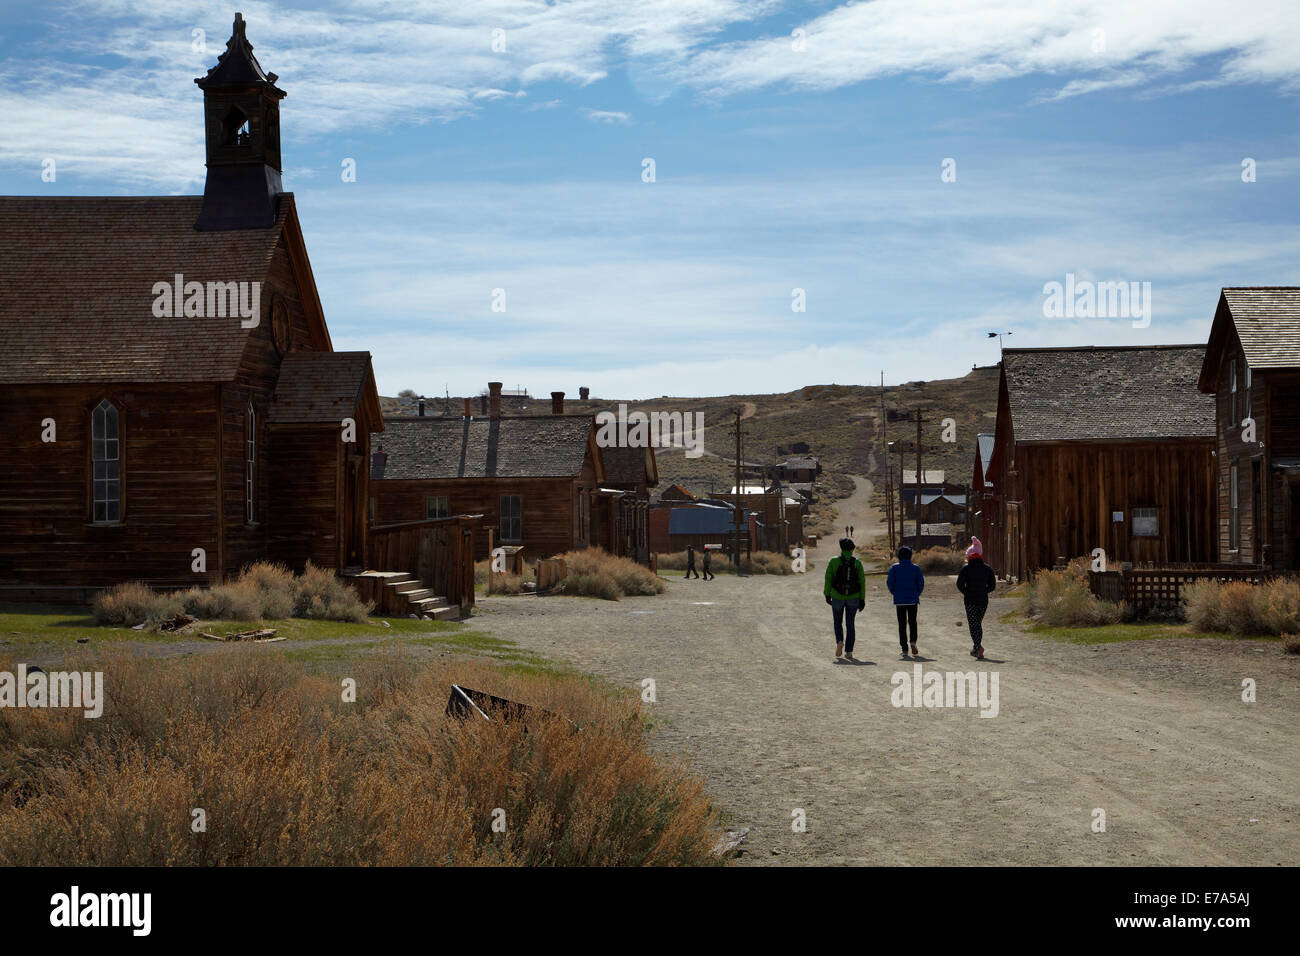 Methodist Church and tourists, Green Street, Bodie Ghost Town, Bodie Hills, Mono County, Eastern Sierra, California, - Stock Image